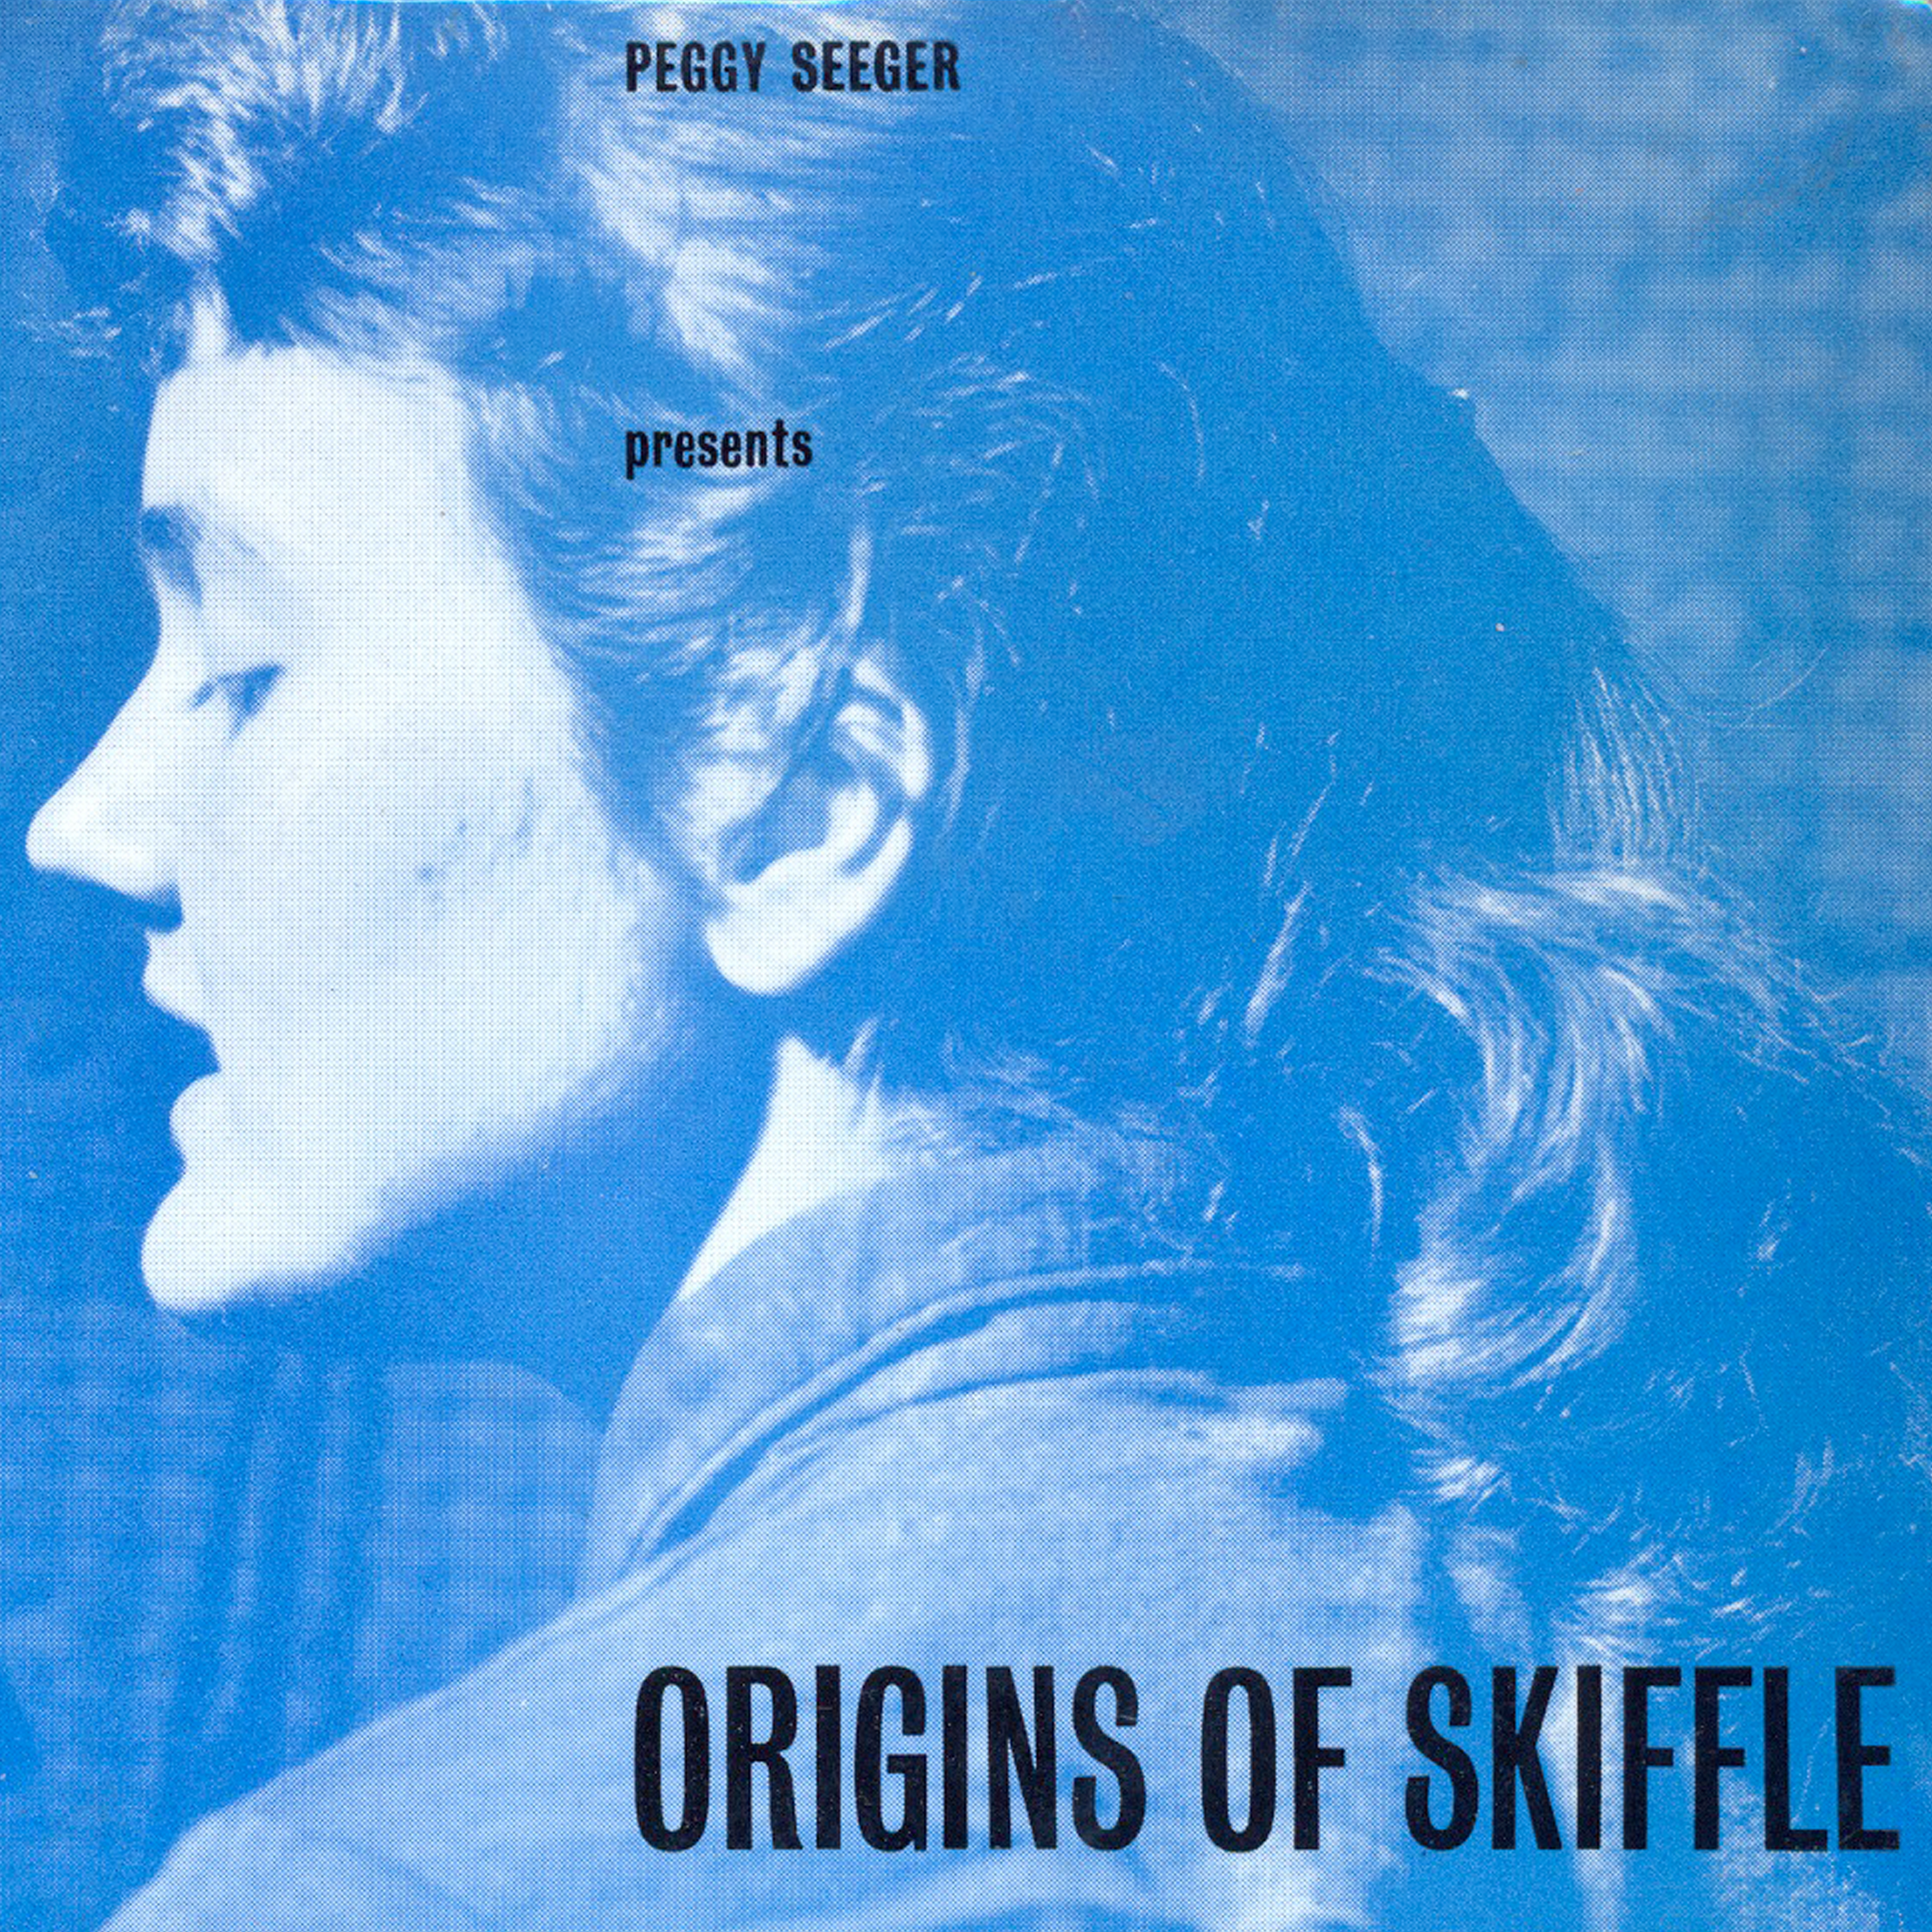 Peggy Seeger Presents Origins of Skiffle